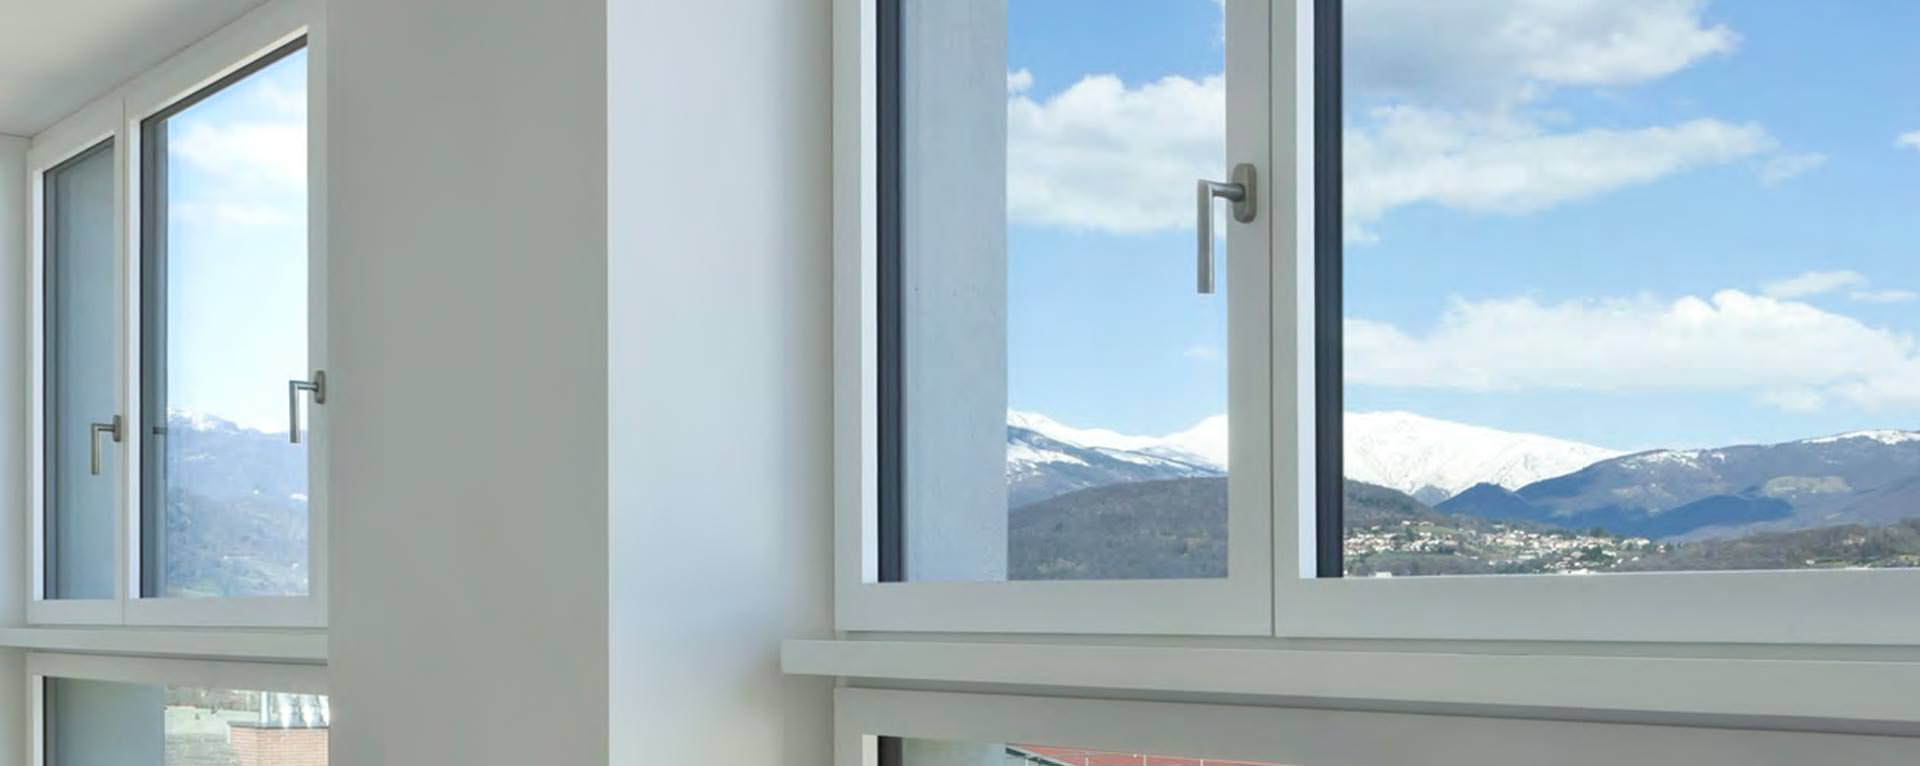 Schuco AWS 70 Casement Windows, London